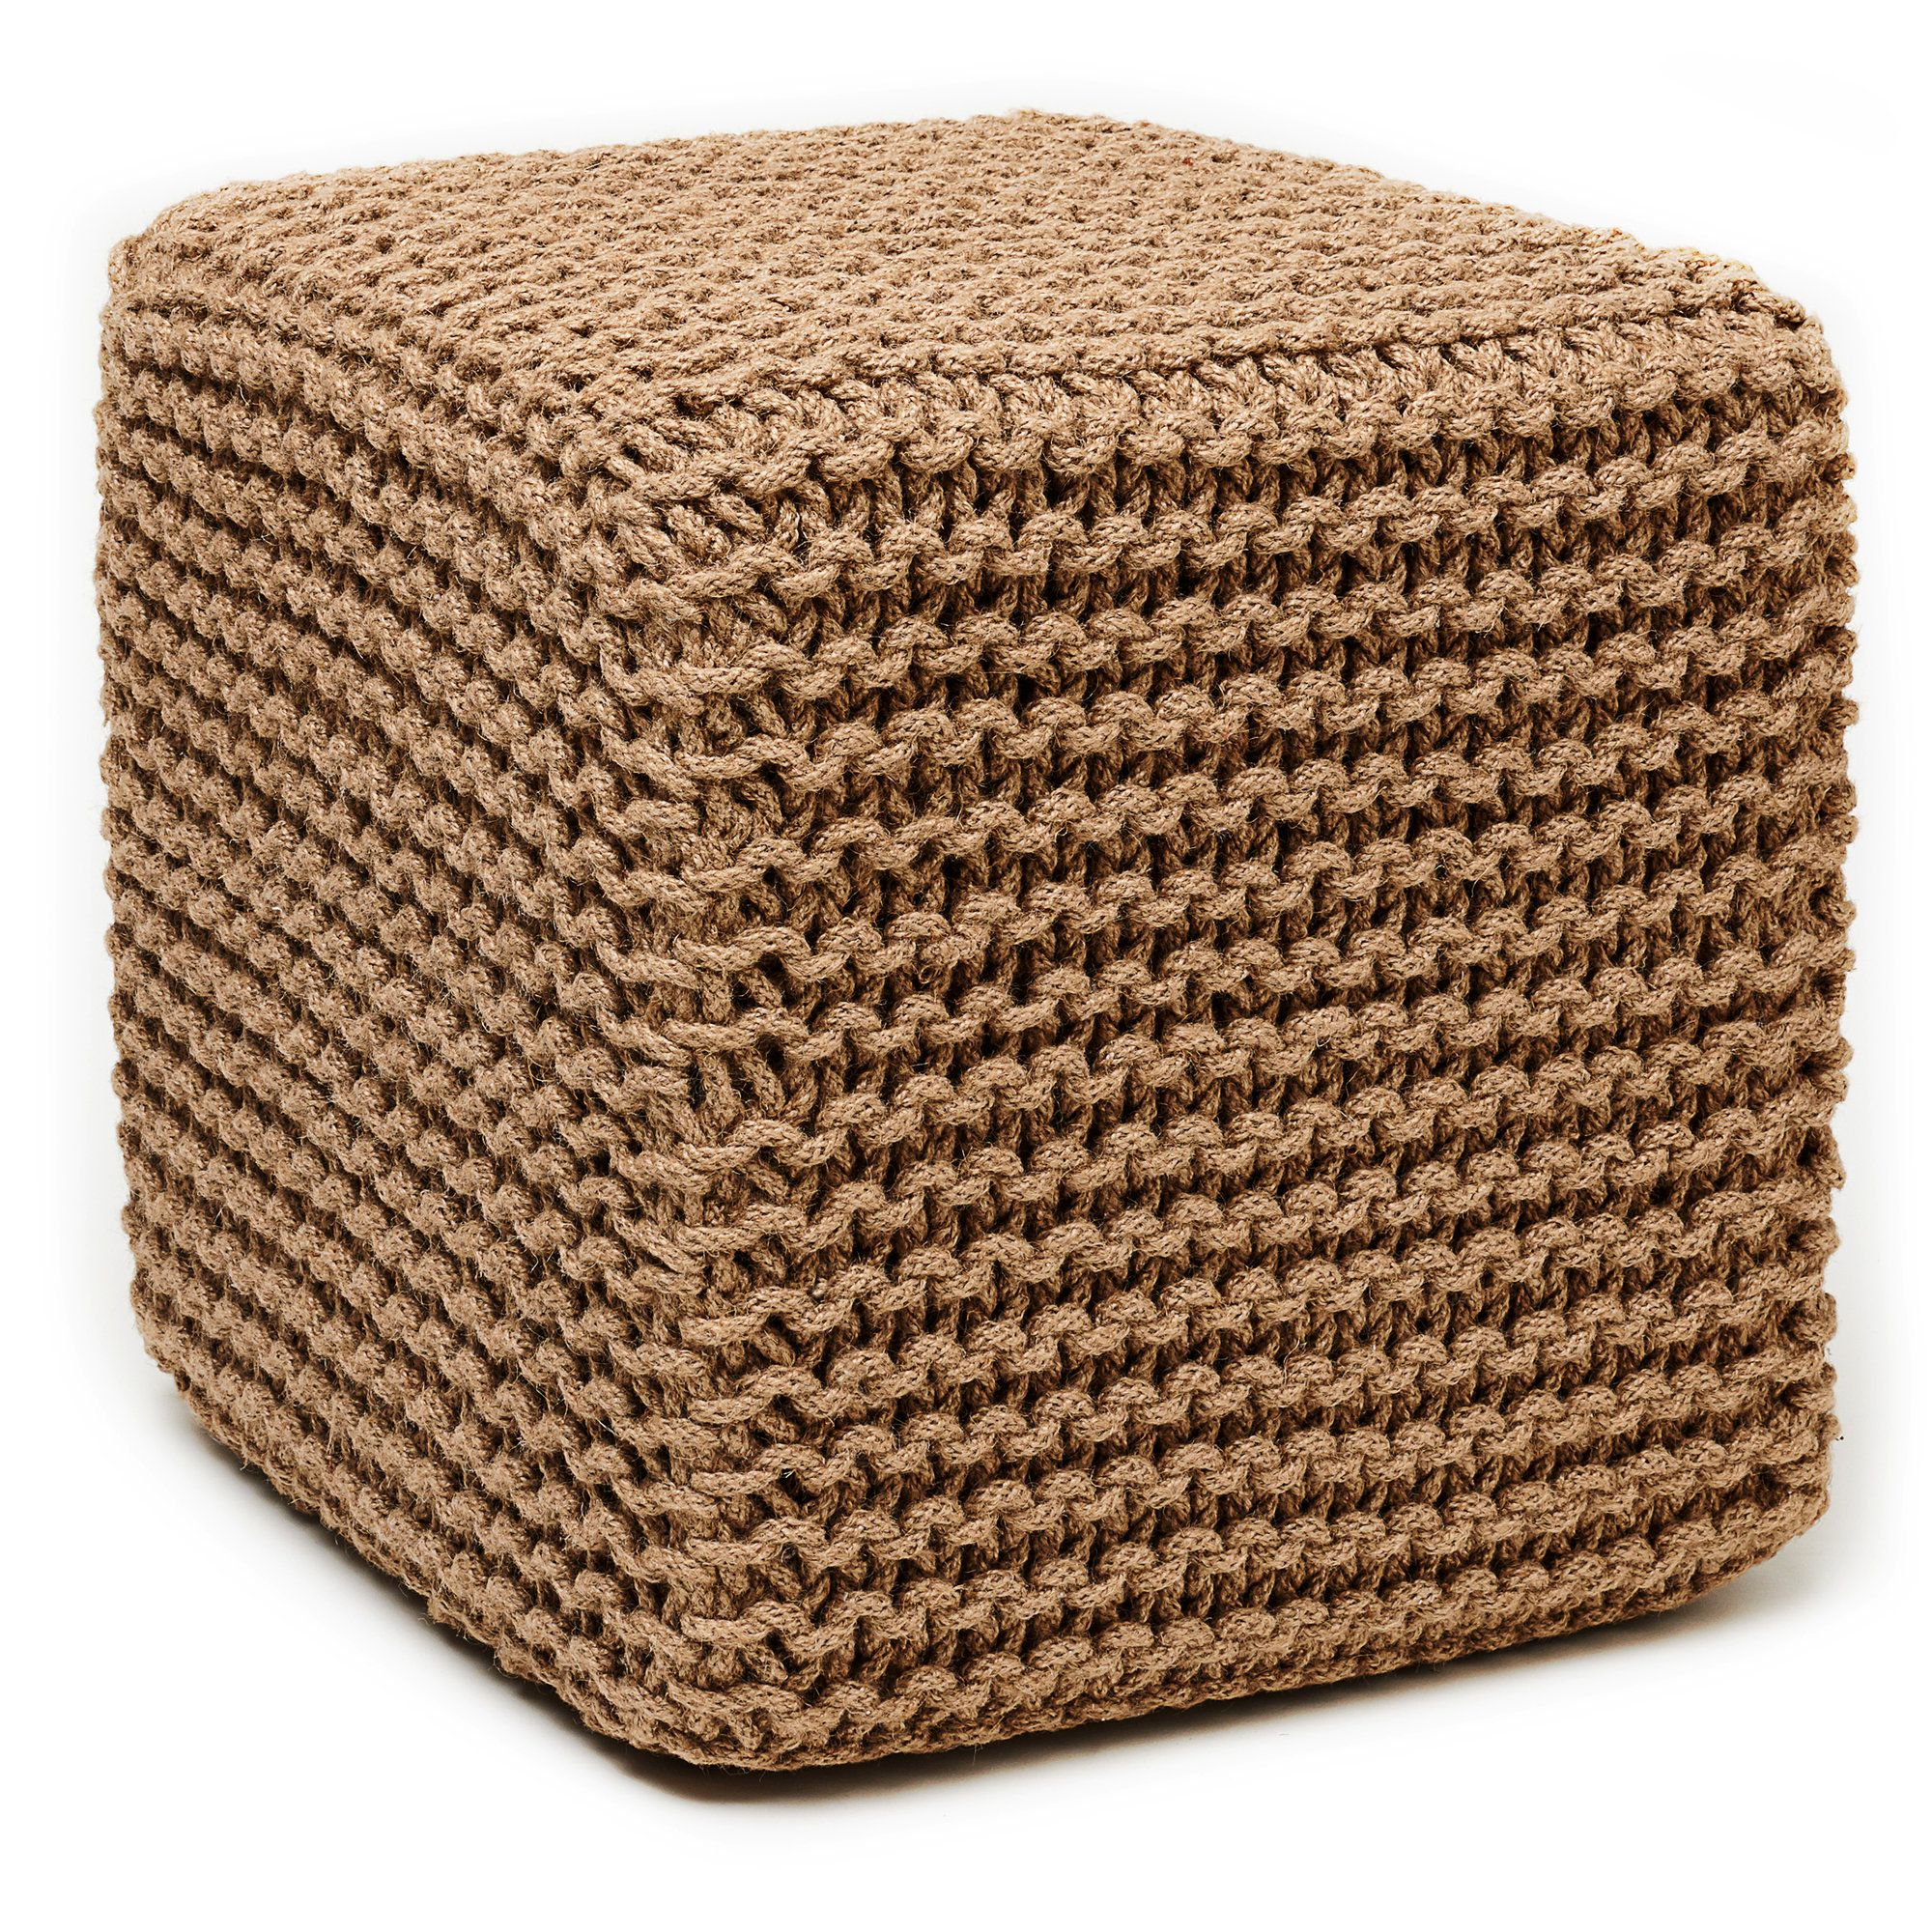 pouf brown of sleeper poof modern seagrass outdoor wicker and fabric cube leather square size ottoman with contemporary large footstool coffee beautiful tray round folding footrest table